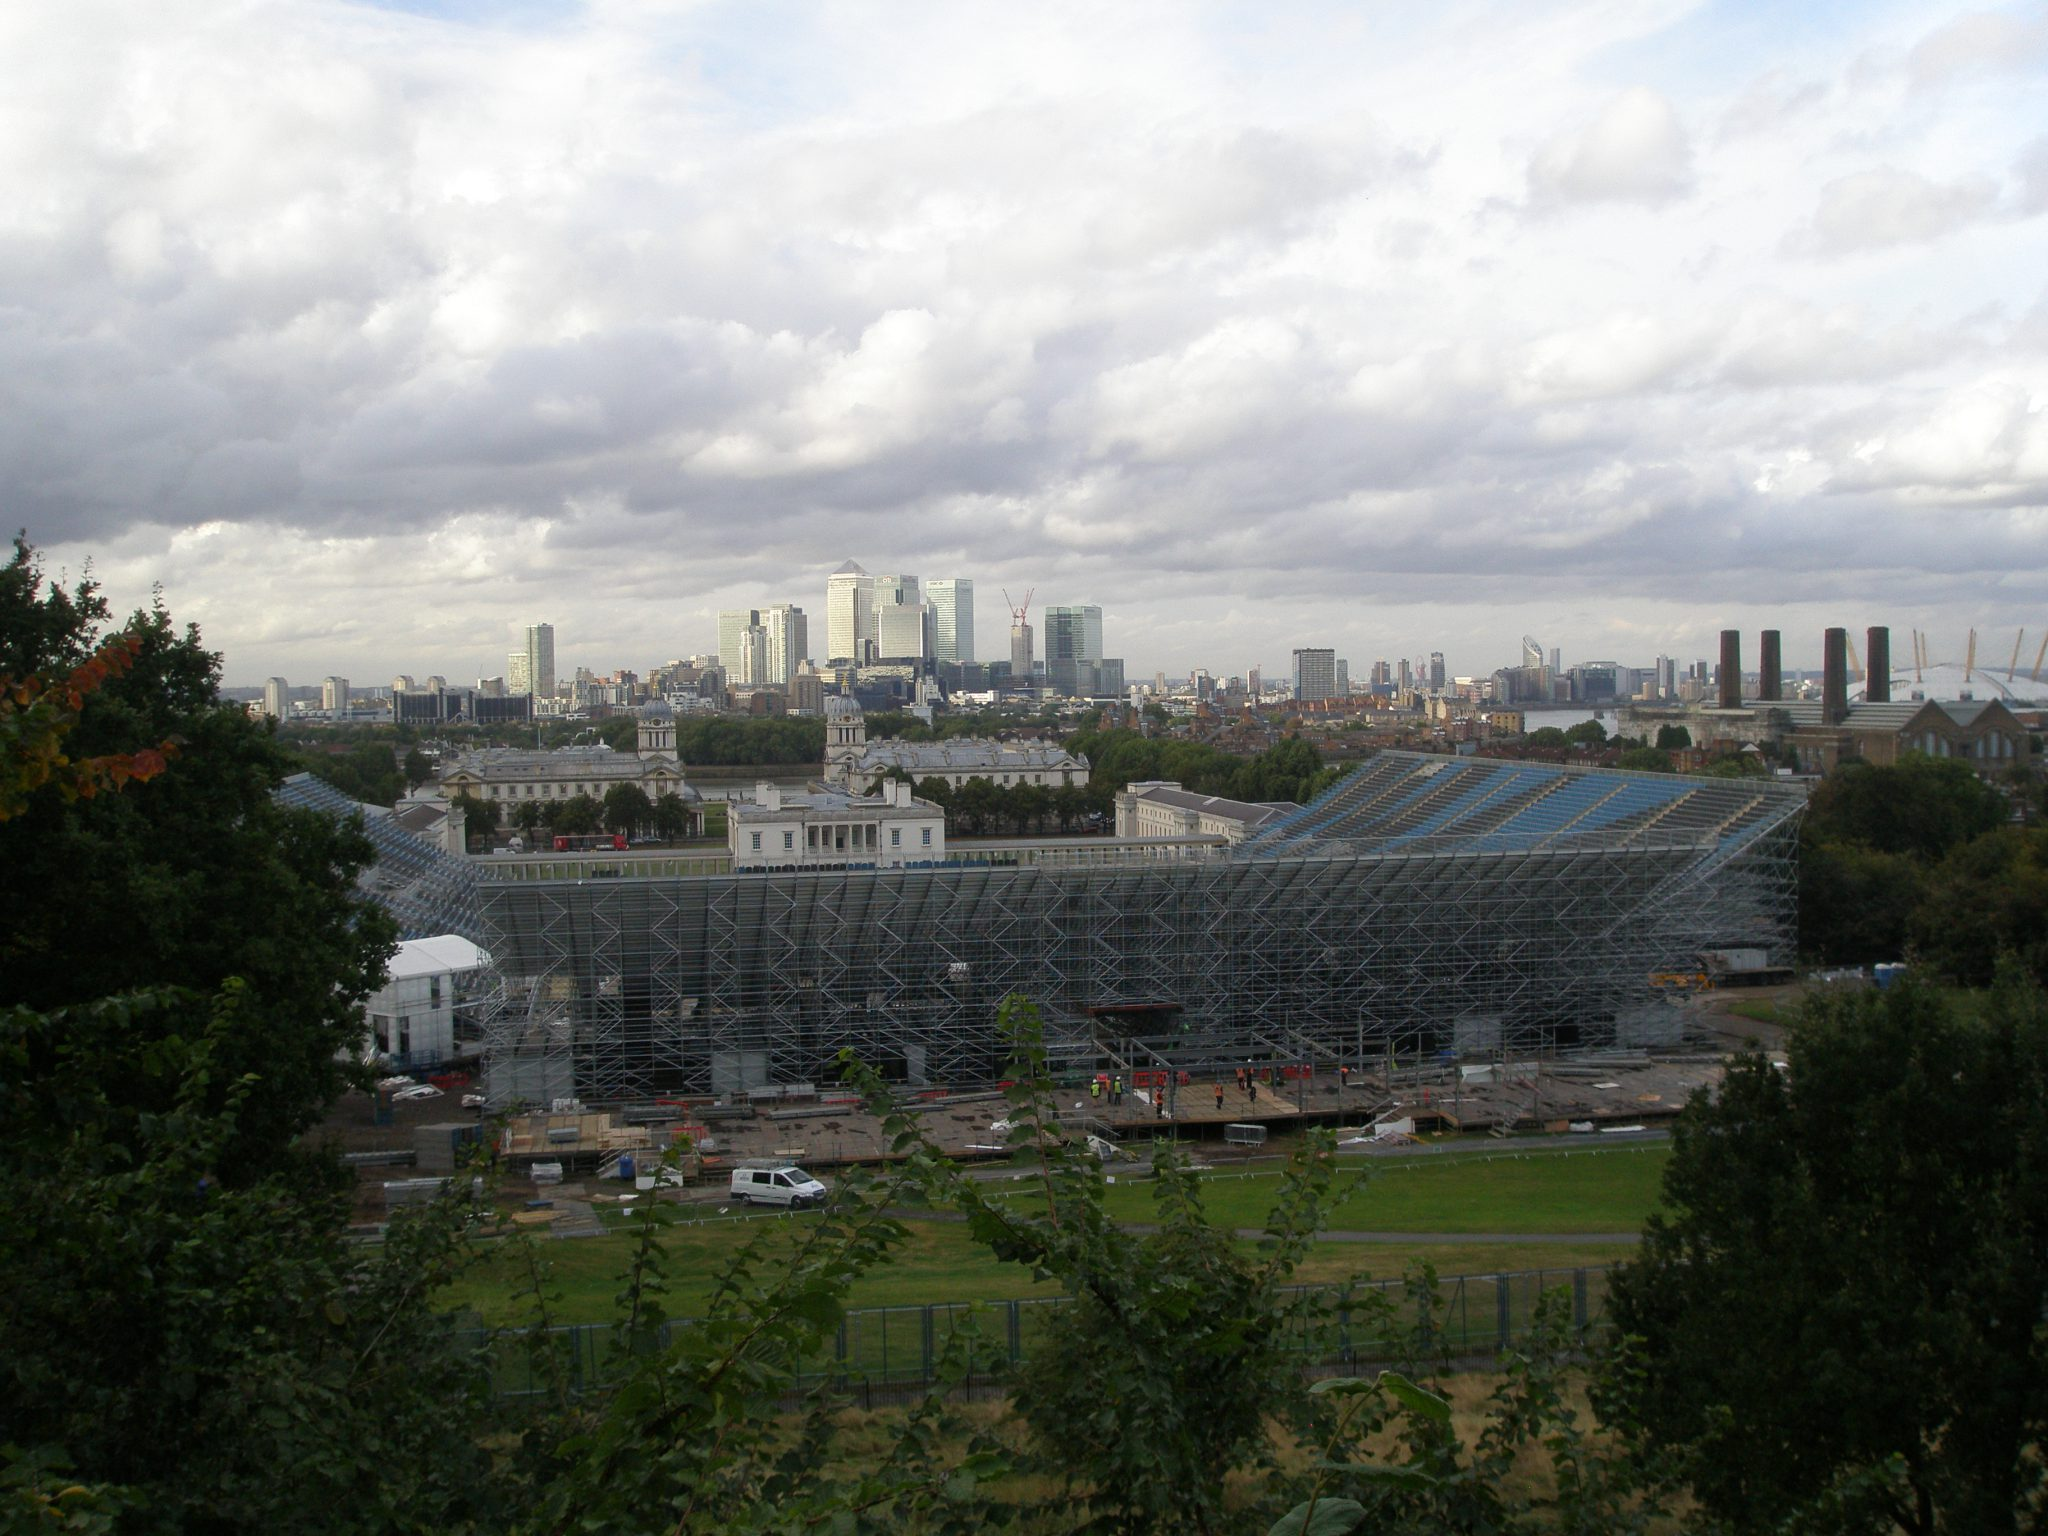 Olympic Grandstands, with The Queen's House, Old Royal Naval College, The Thames & Canary Wharf in the distance